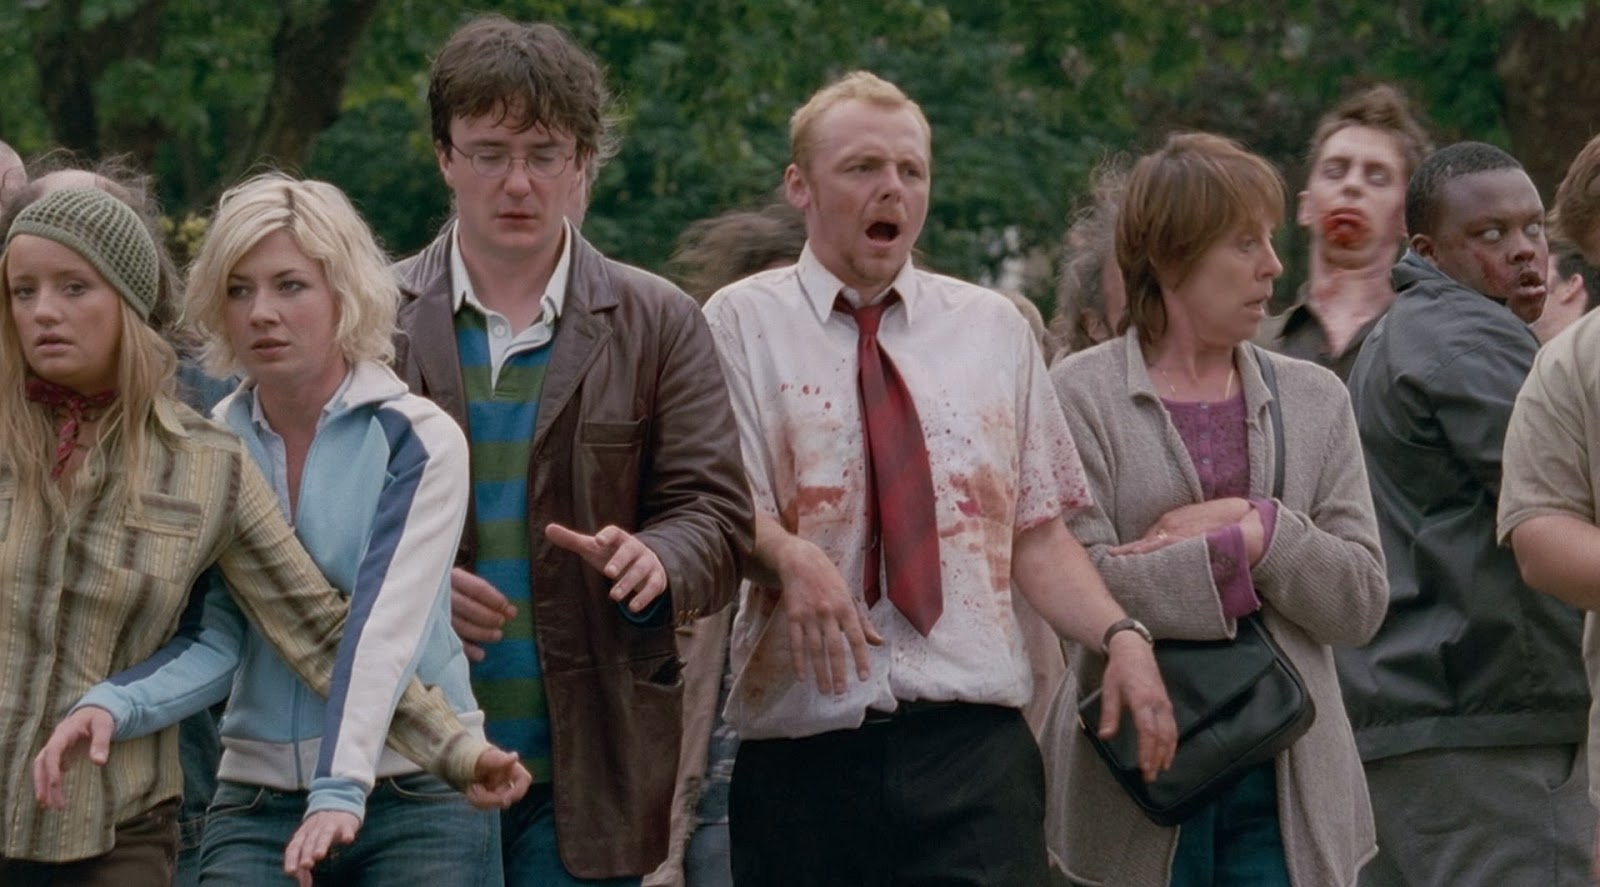 shaun of the dead,zombies,funny scene